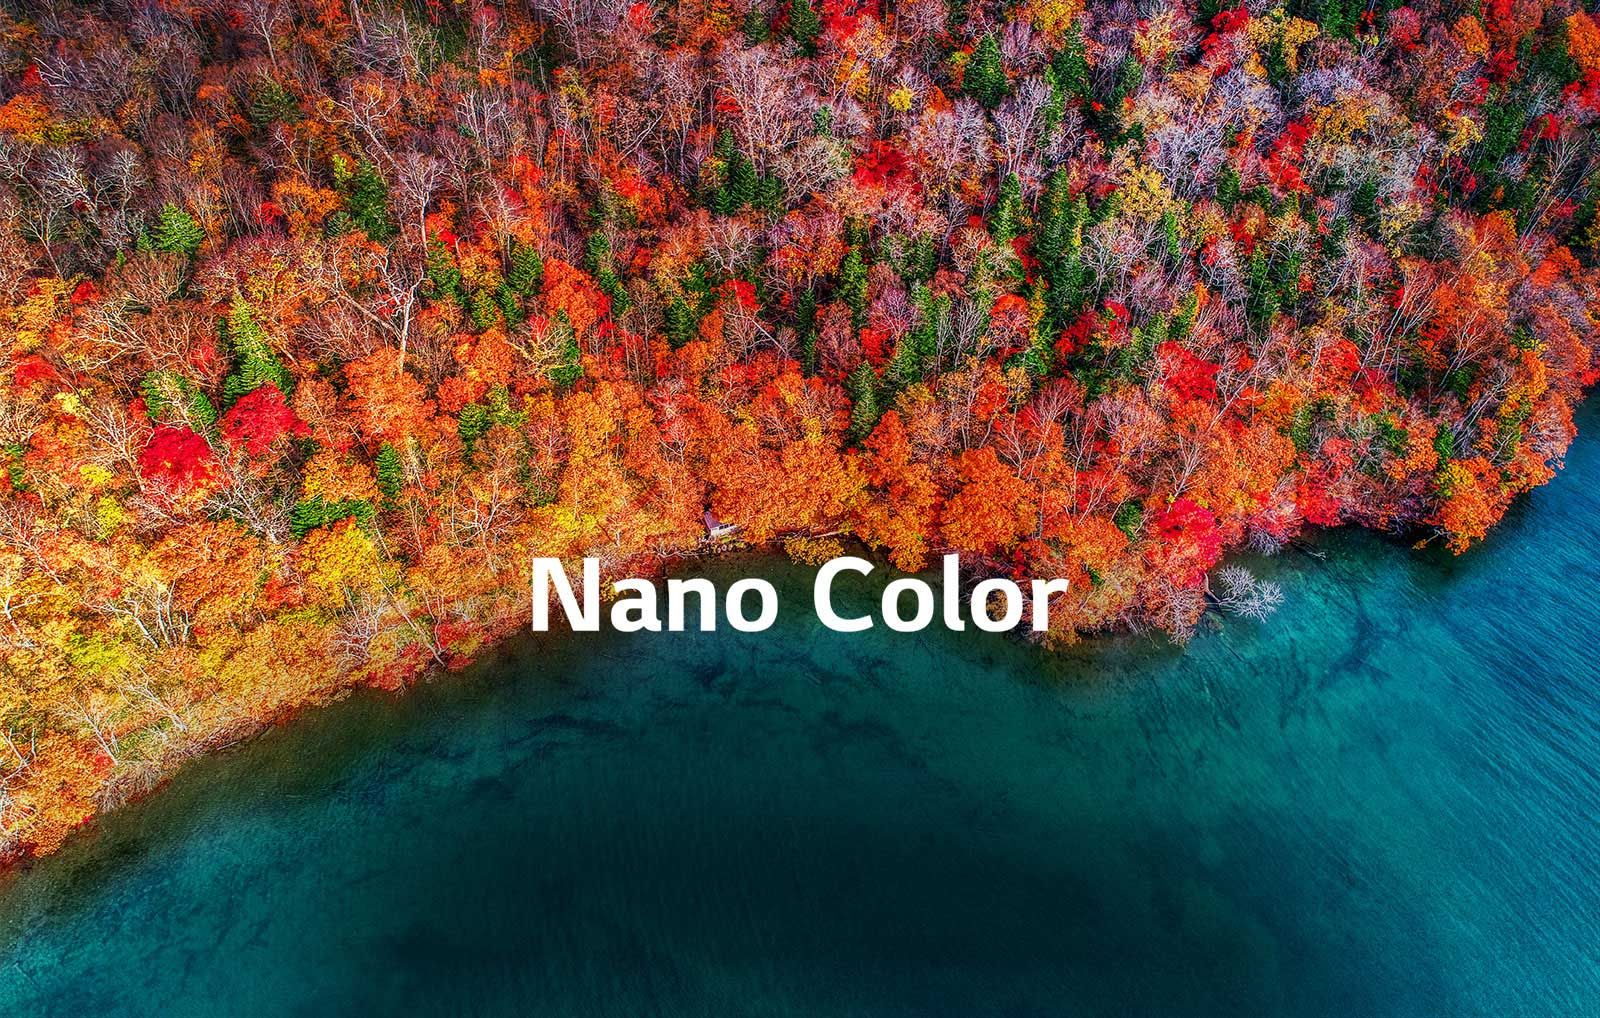 TV-NanoCell-SM80-02-Nano-Color-Desktop_v001